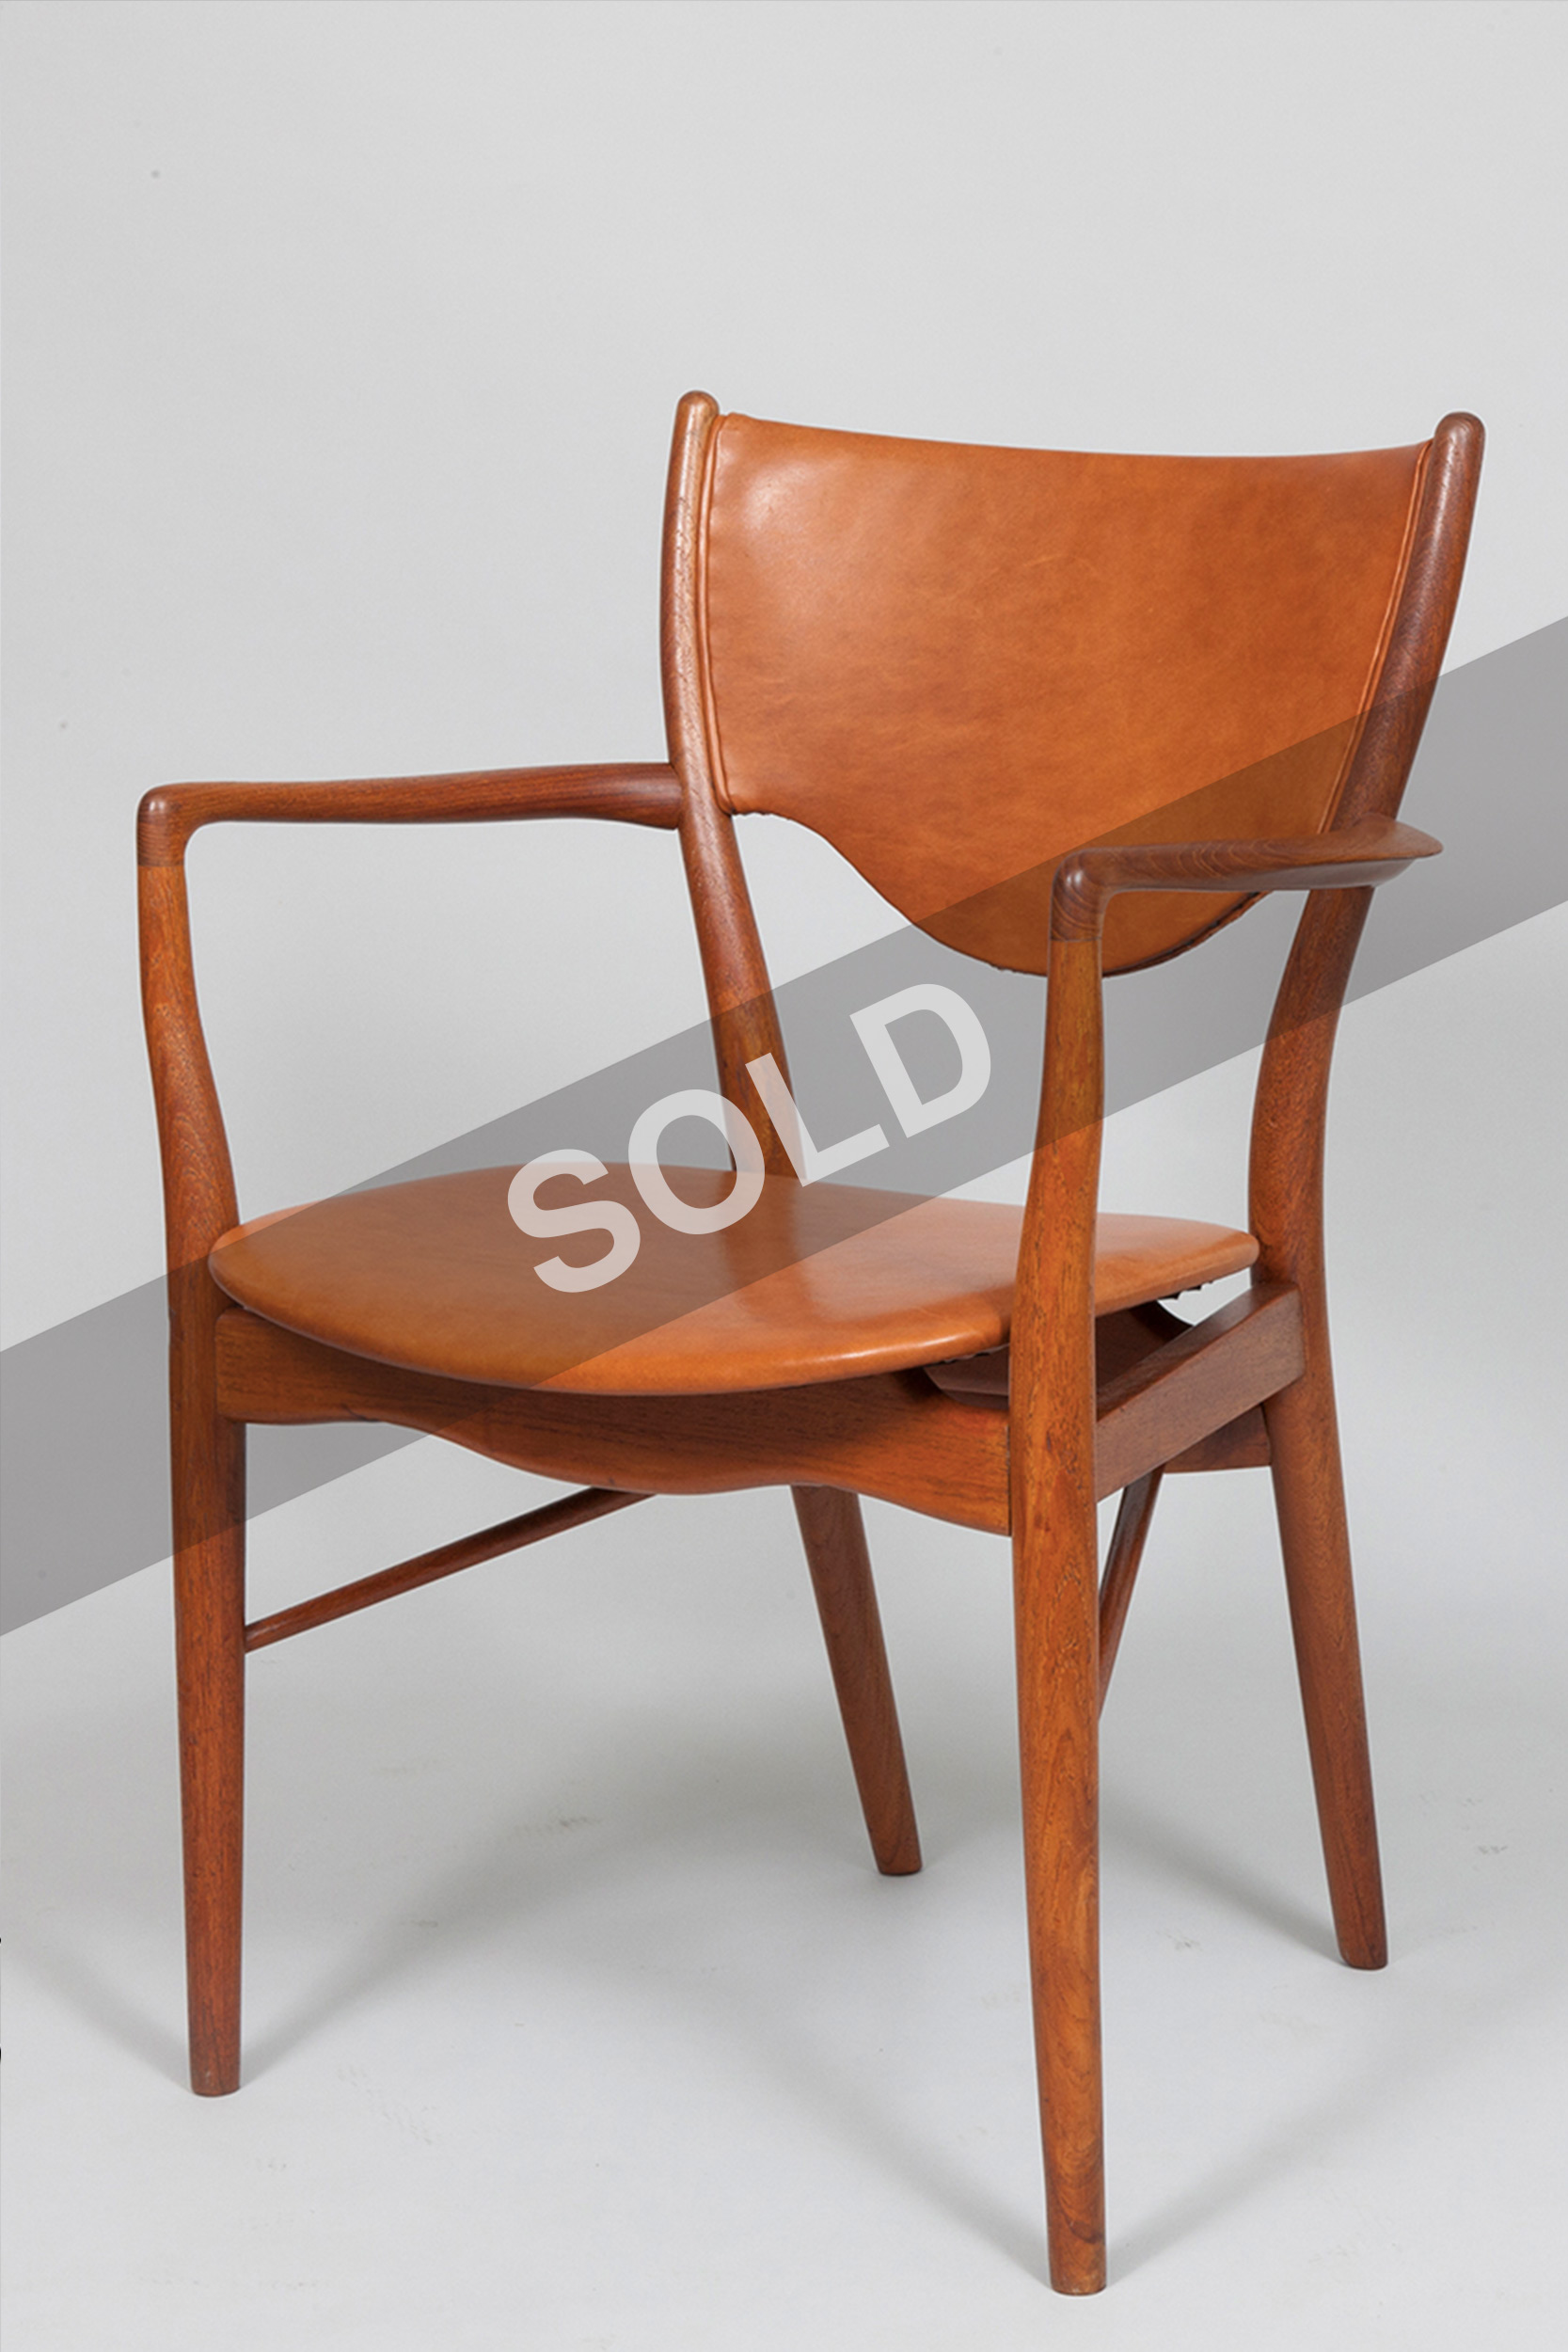 Finn Juhl desk chair (sold)